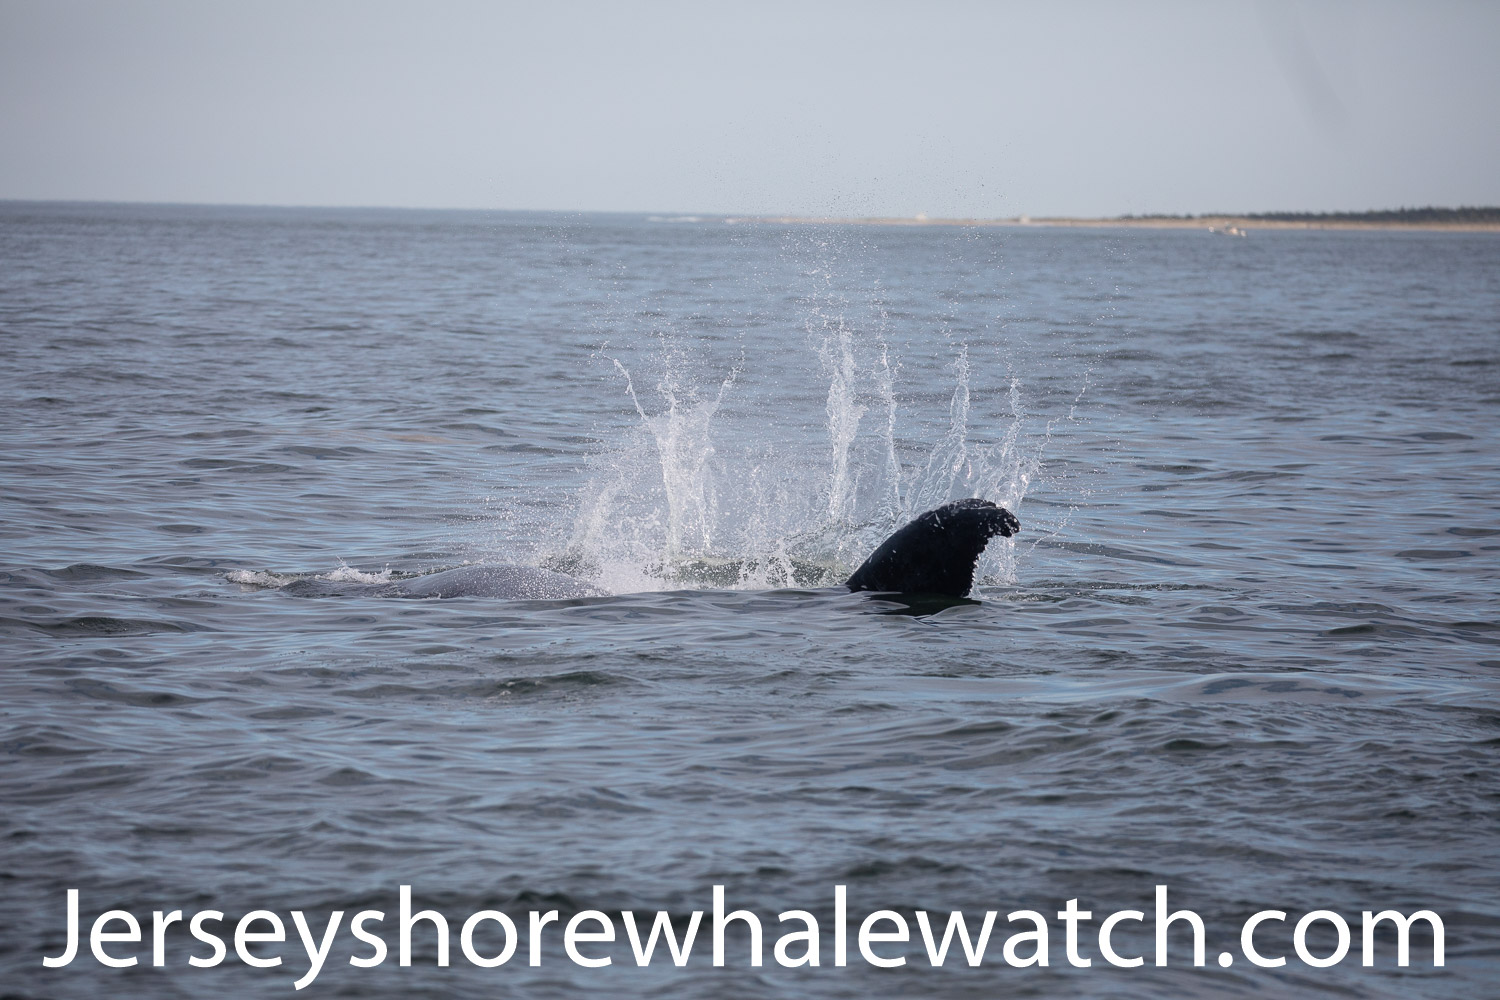 , Our first whale watching trip in 2018 photo, Jersey Shore Whale Watch Tour 2020 Season